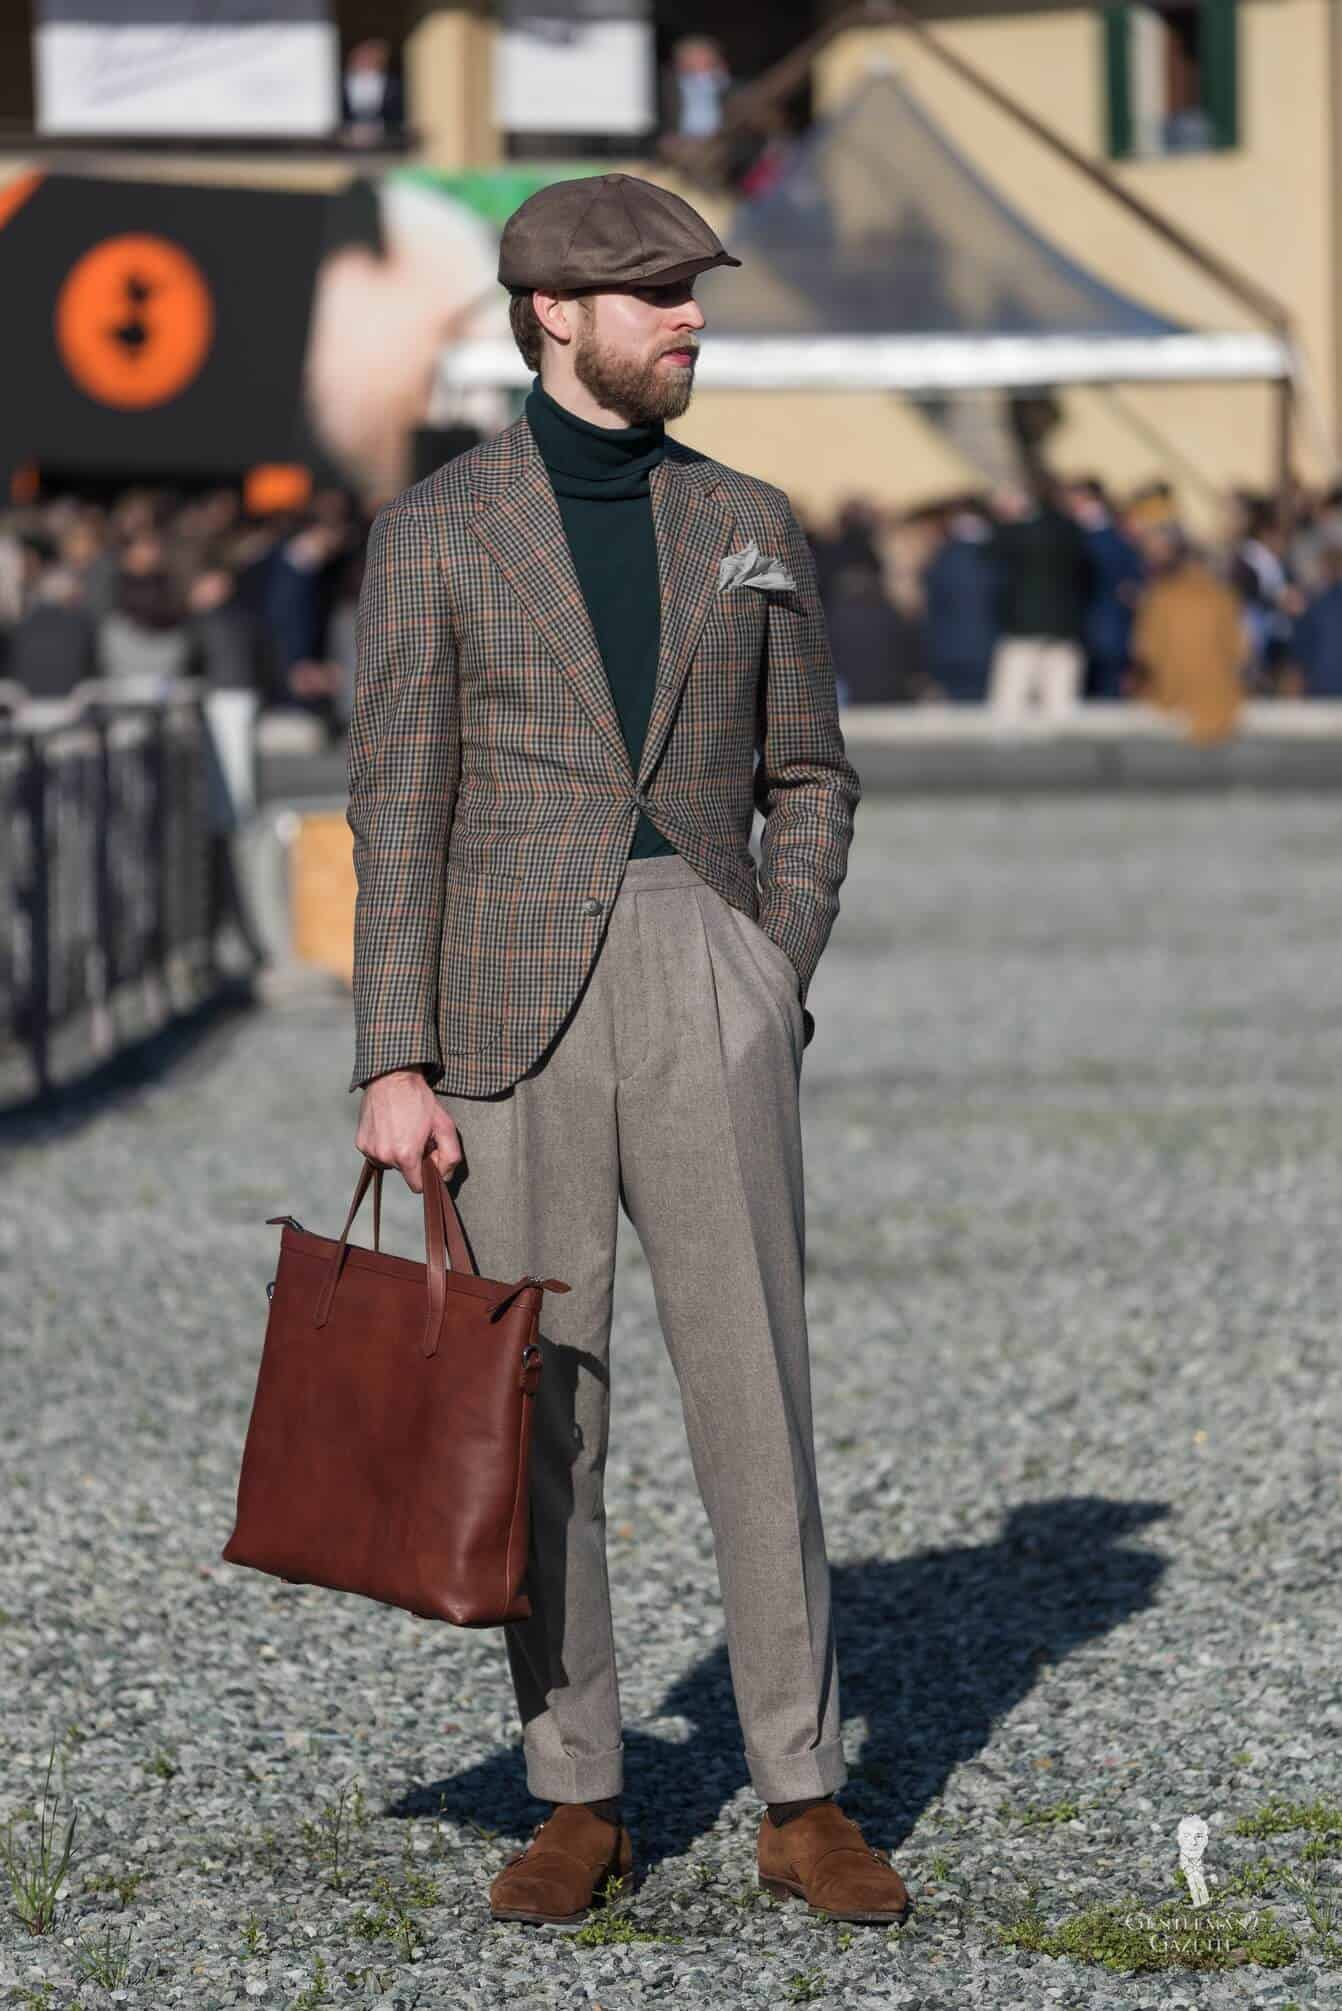 Wonderful Business Casual Outfit For Fall With Brown Suede Double Monks And Green Turtleneck